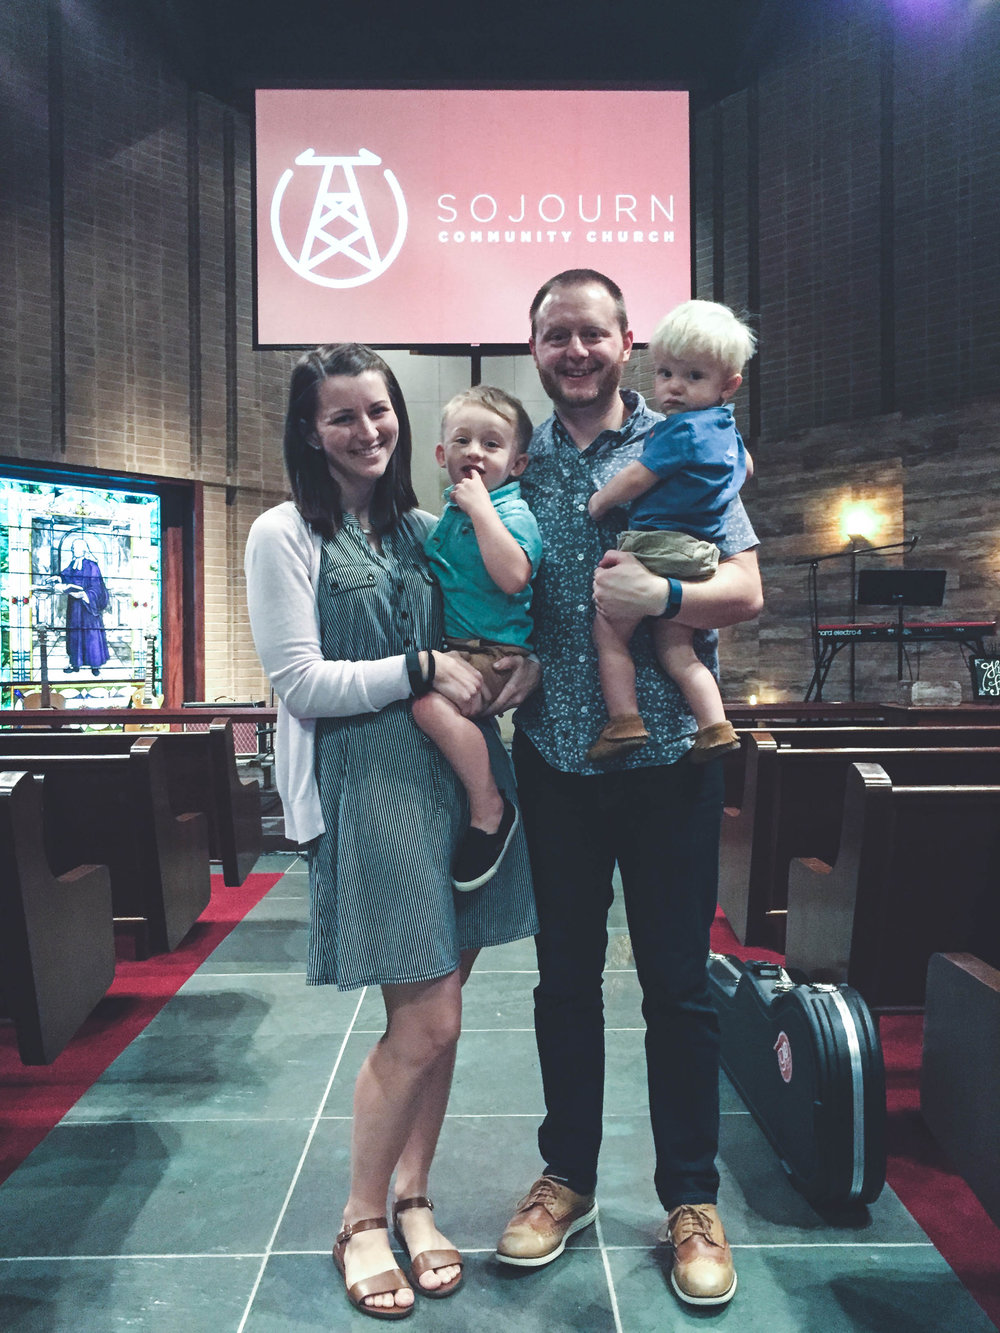 The Jean family is all smiles after the service on Sunday evening. Silas just turned 3, Henry is 18 months, and a new baby sister is set to arrive this September. Featured in the photo from left to right: Esther Jean, Silas Jean, Josh Jean, and Henry Jean.